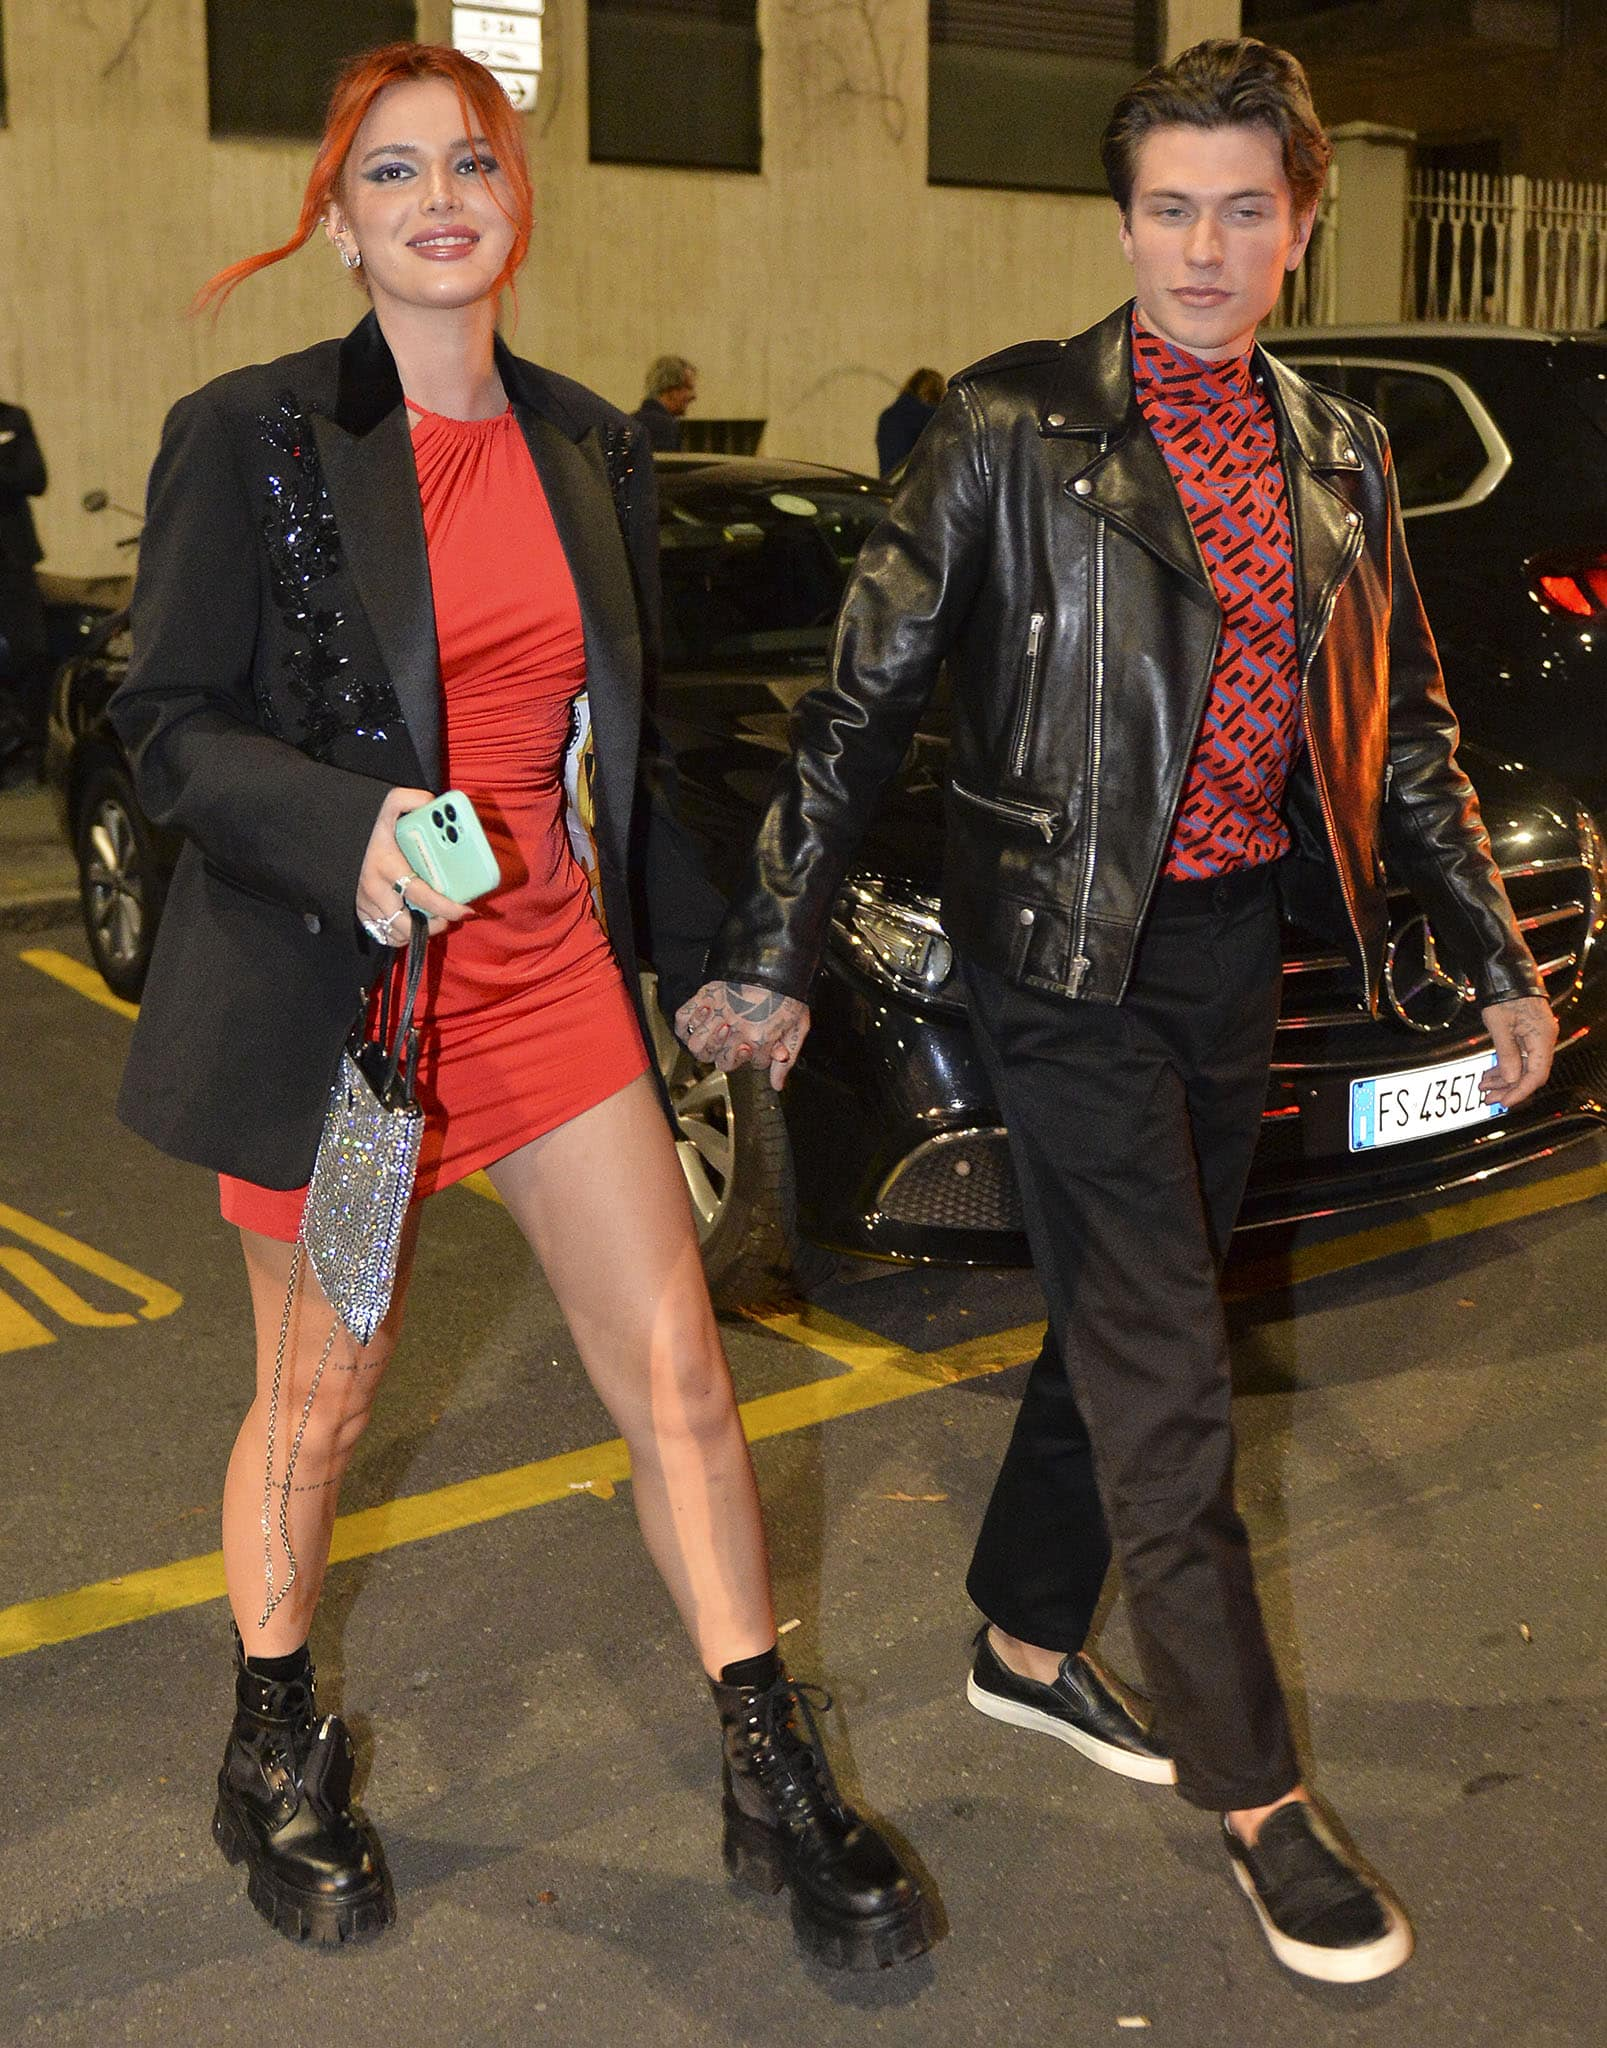 Bella Thorne parades her legs in a red mini dress with a black tuxedo, while Benjamin coordinates with Bella in a red Versace top with a black leather biker jacket